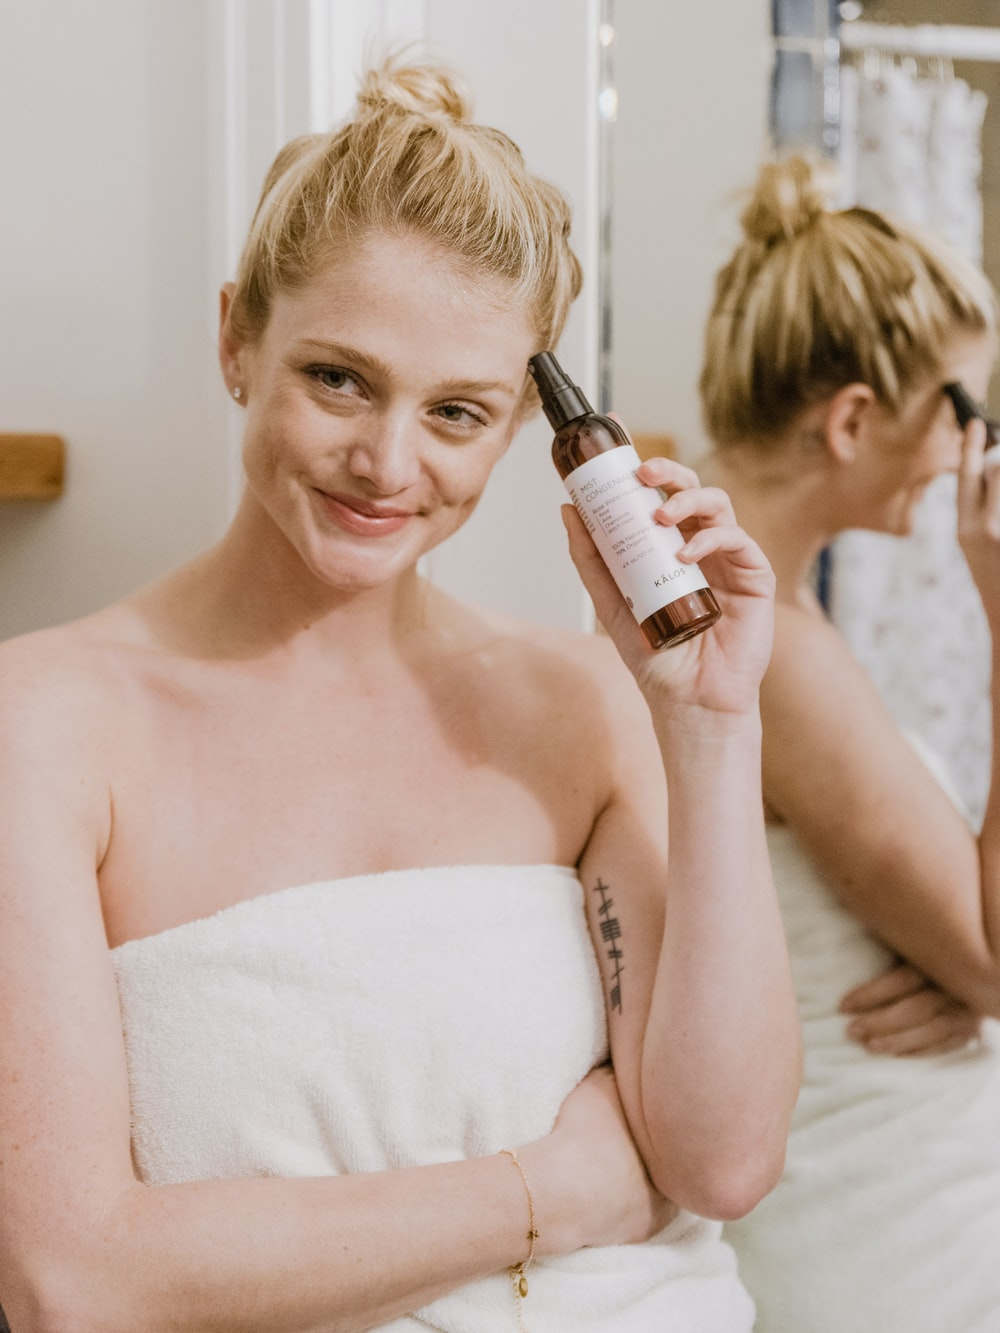 woman in white towel holding bottle